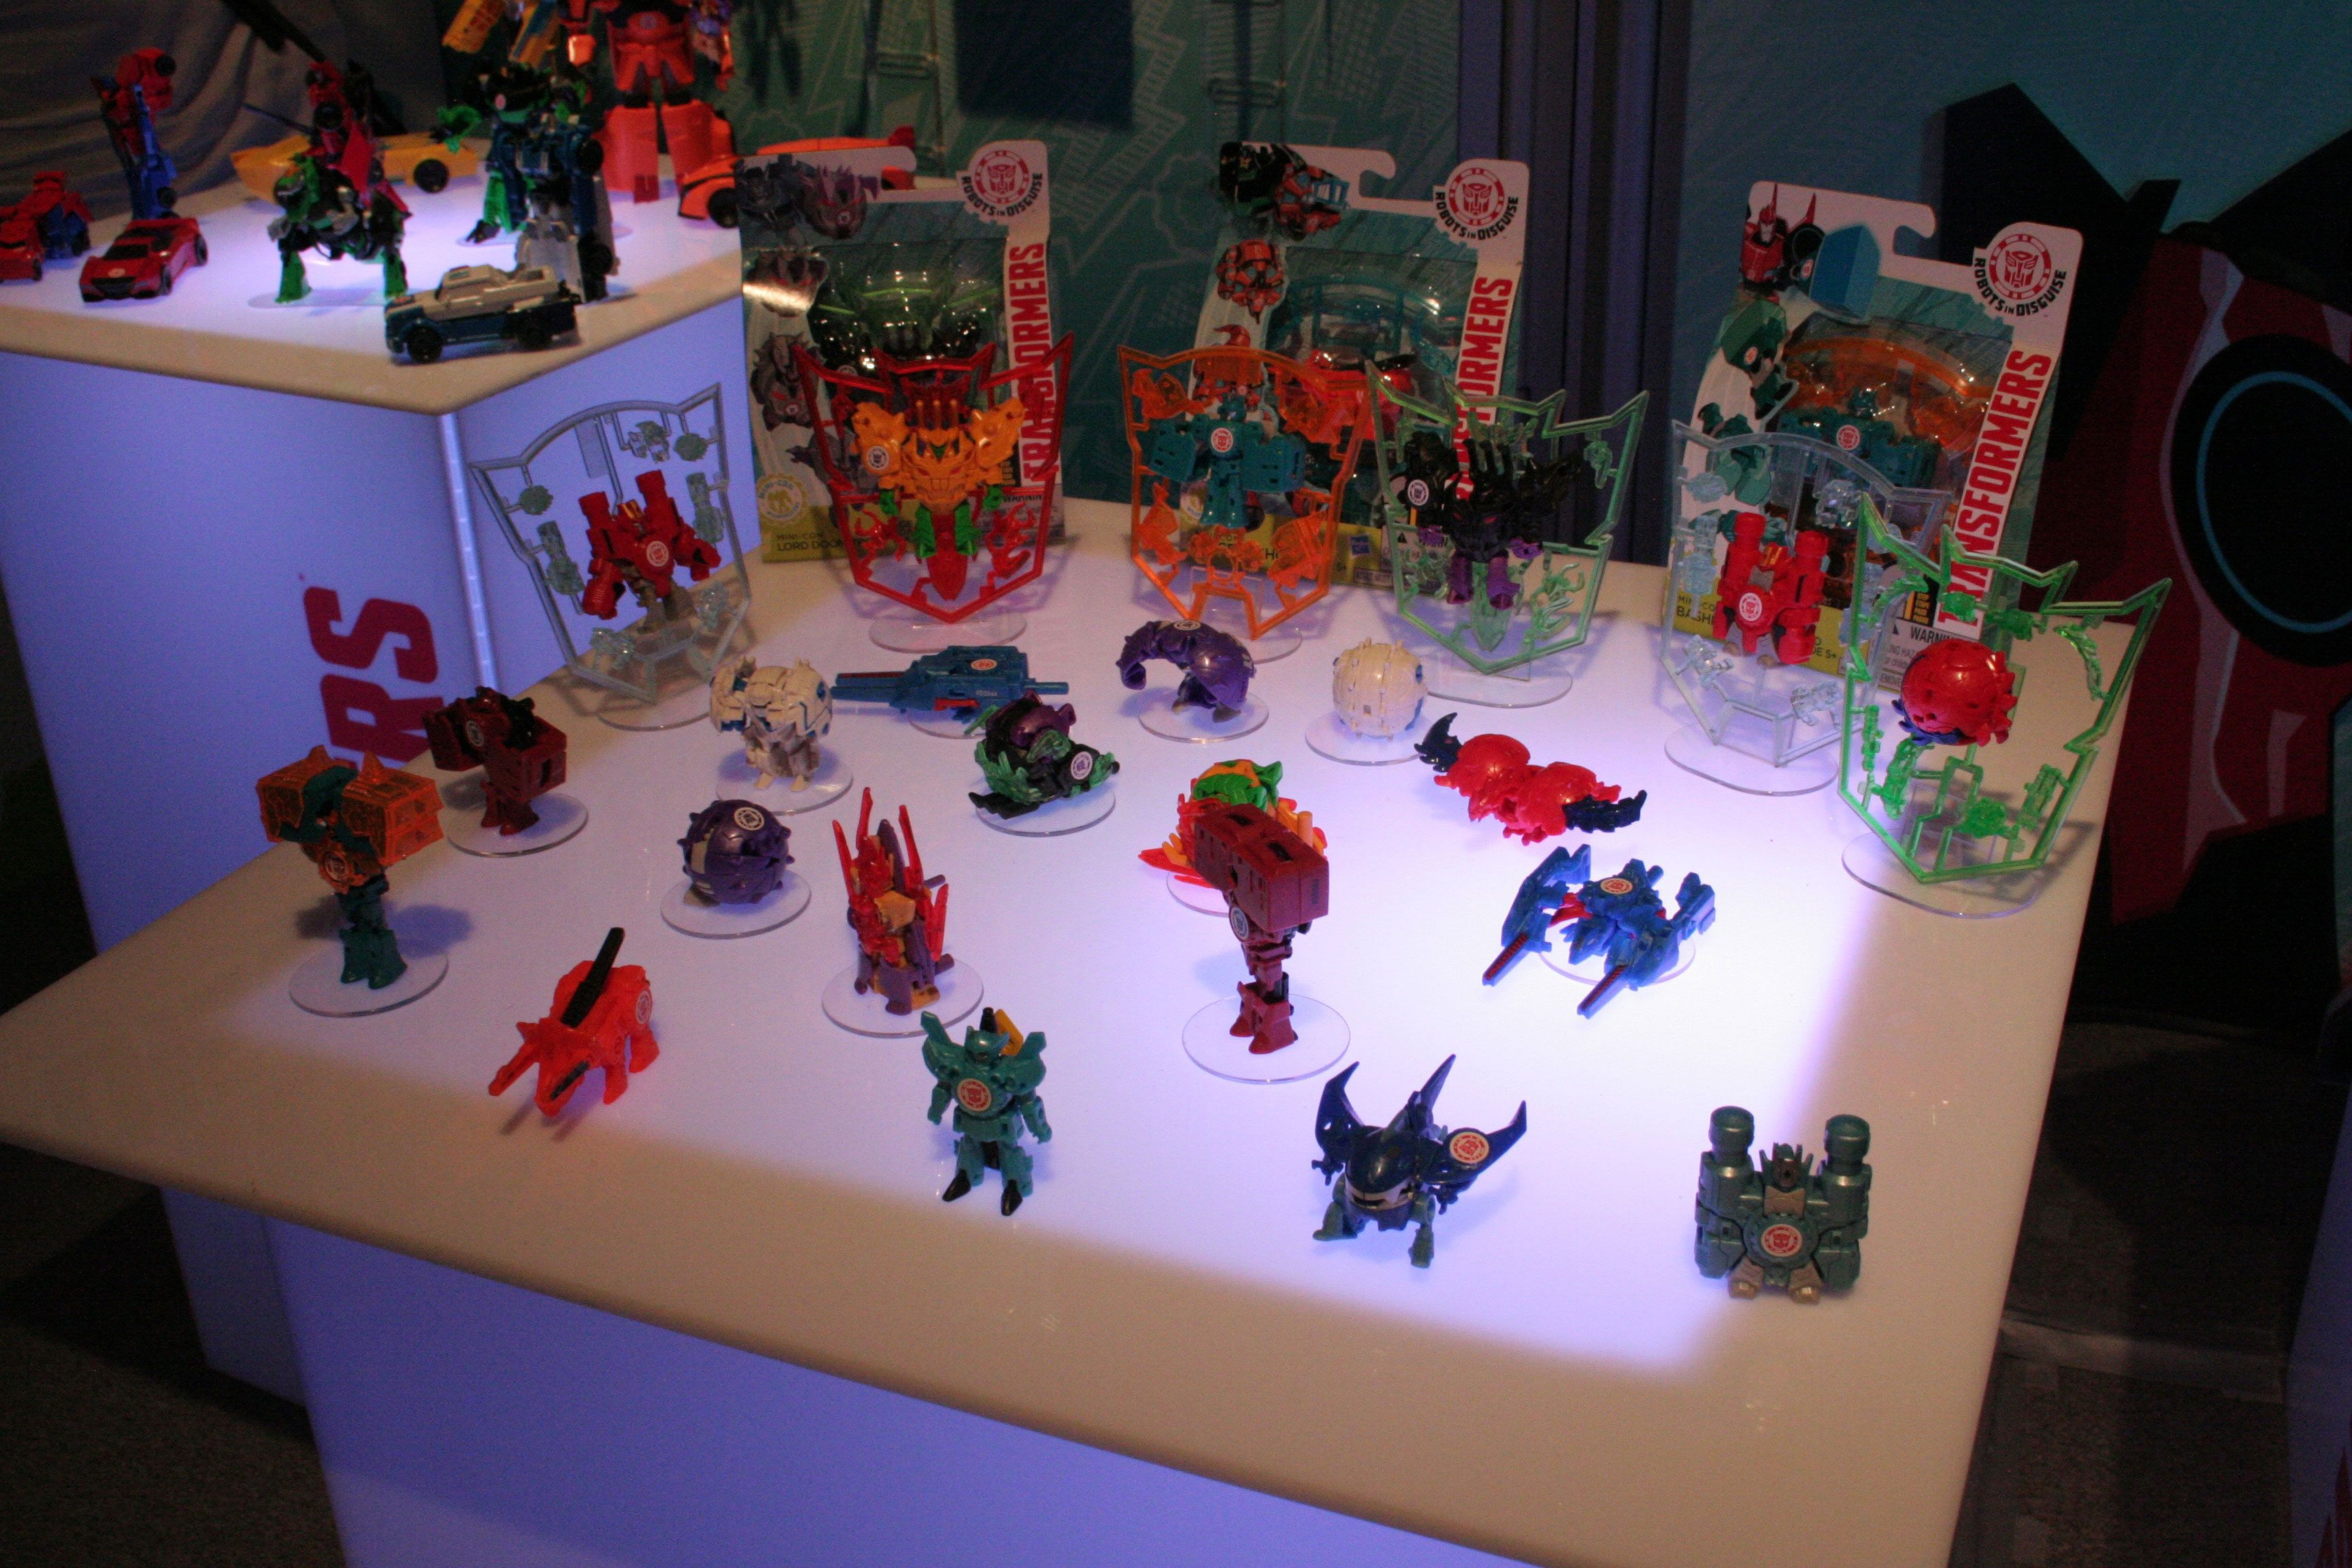 Transformers, Moana Images from Toy Fair 2016 - Collider